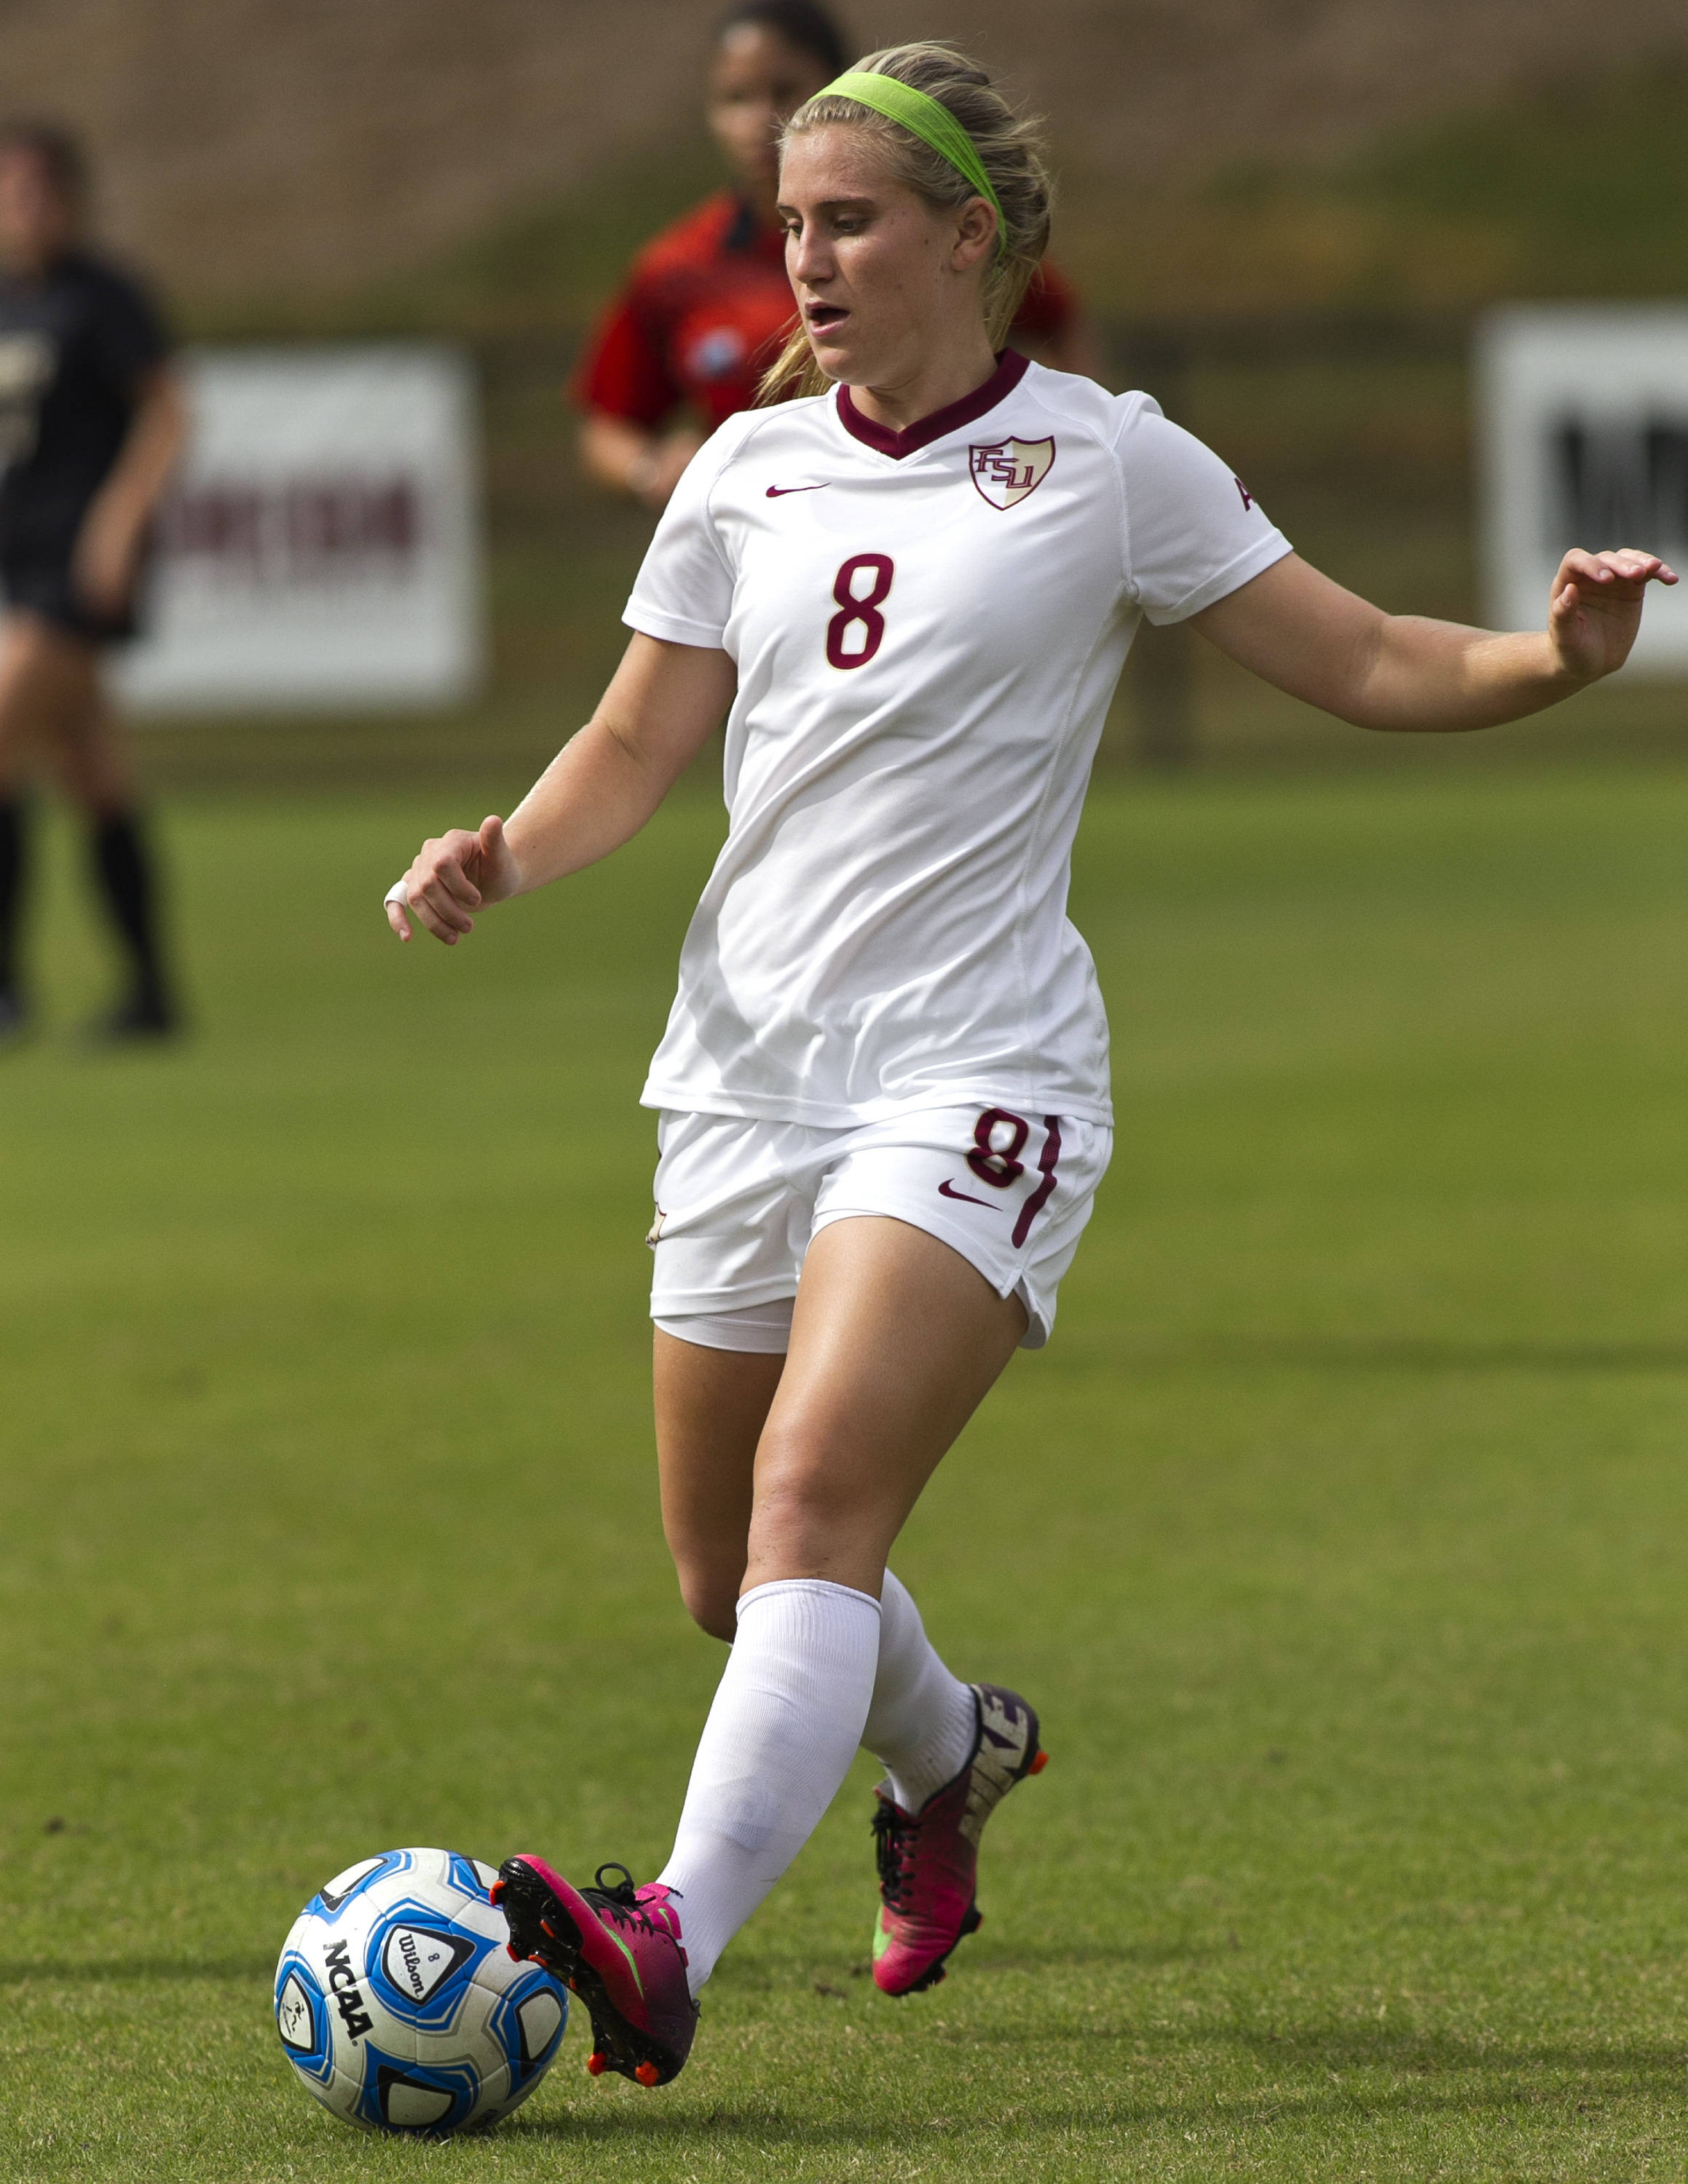 Michaela Hahn (8), FSU vs Colorado, 11-23-13, 3rd round NCAA Tournament (Photo by Steve Musco)